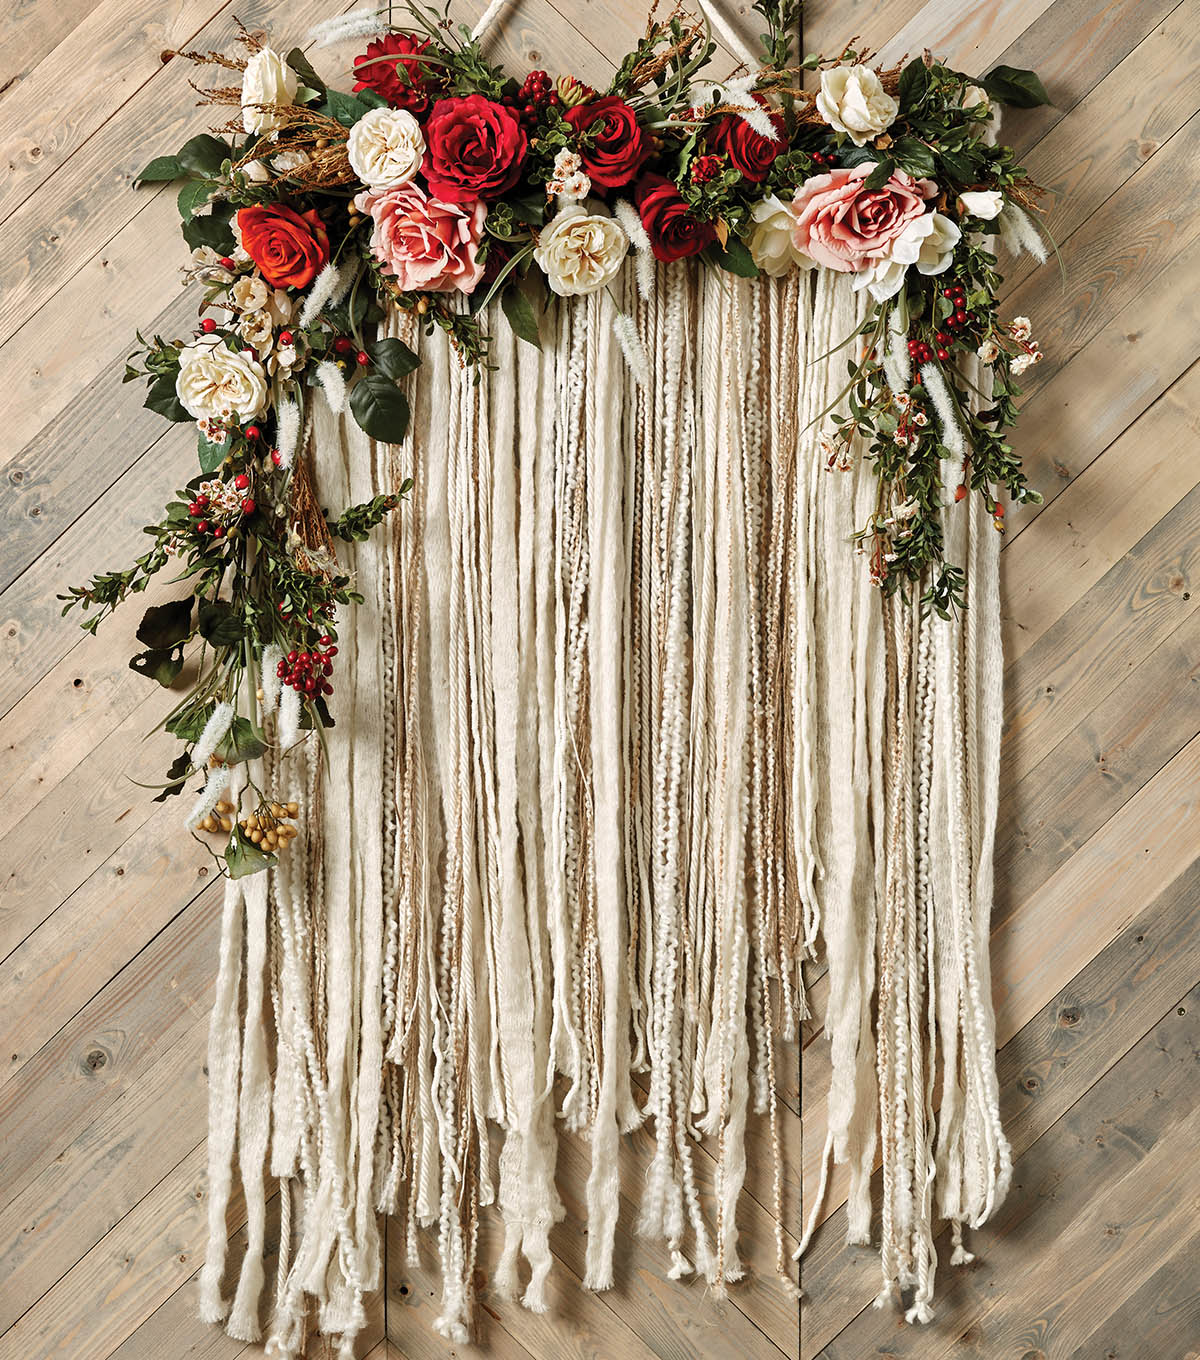 How To Make A Floral Yarn Wall Hanging Joann